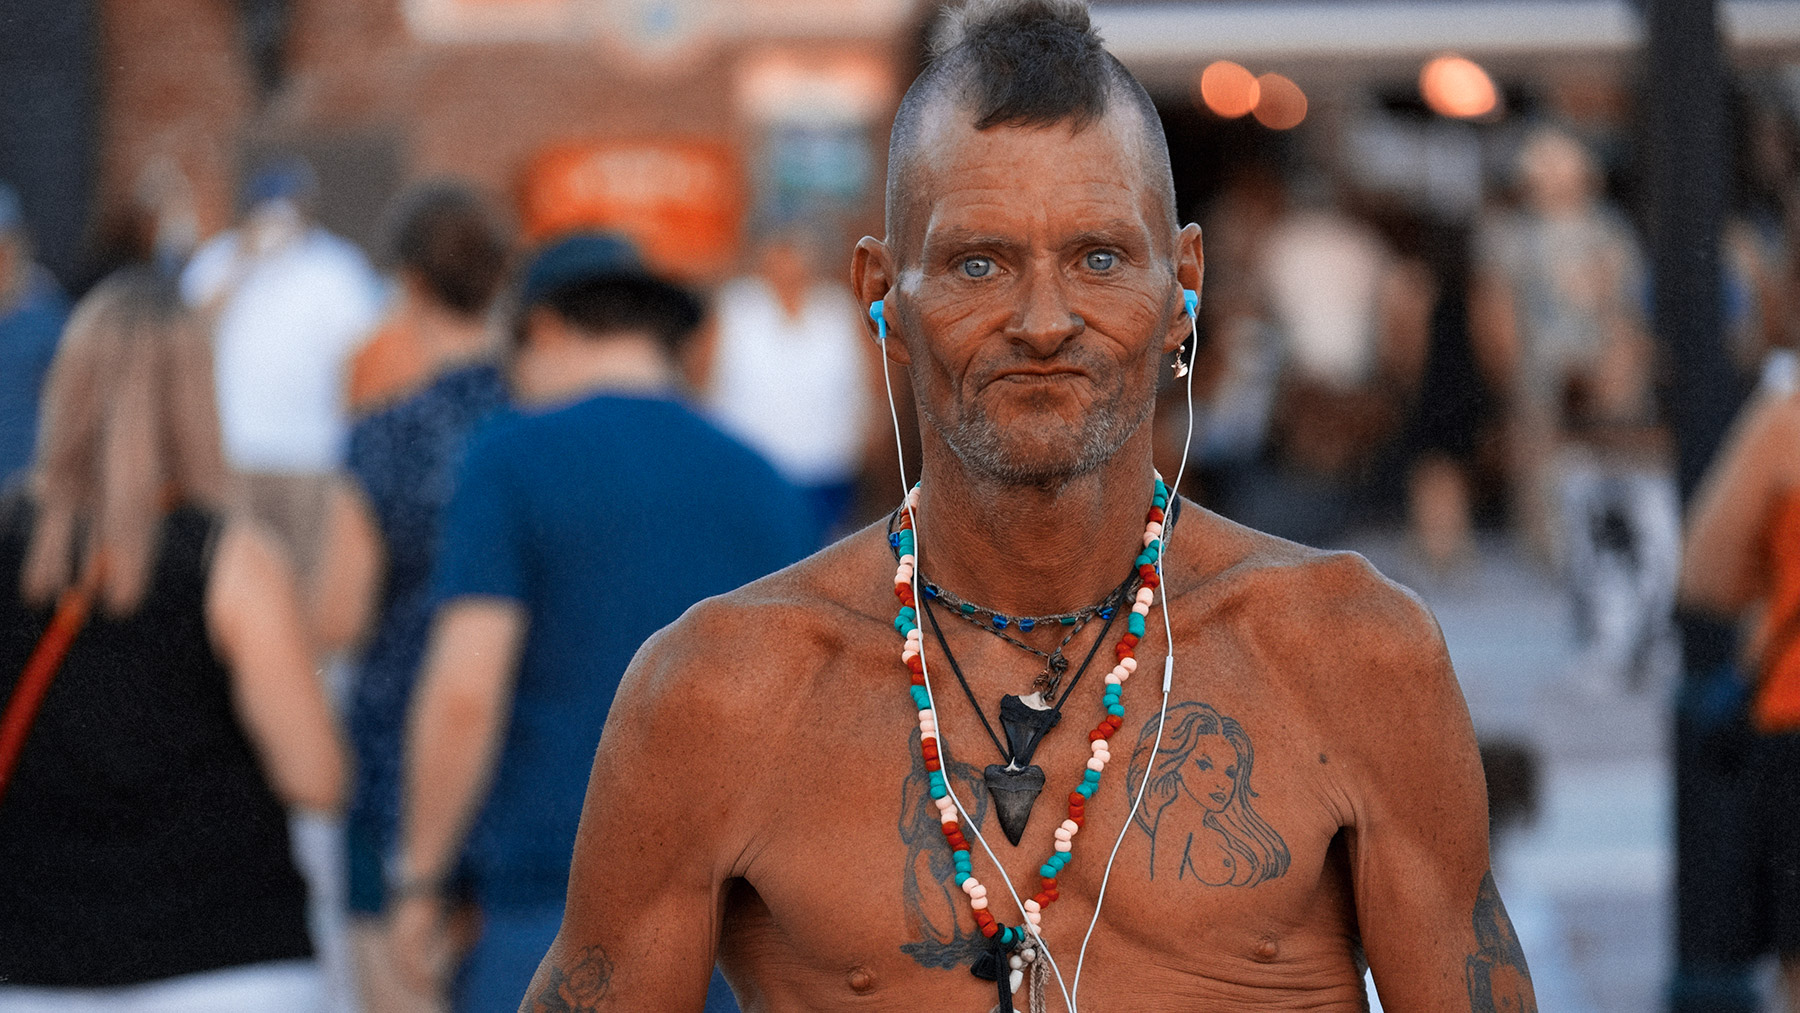 Good Boy Wolf Photographer, filmic portrait, topless tattooed man in the street